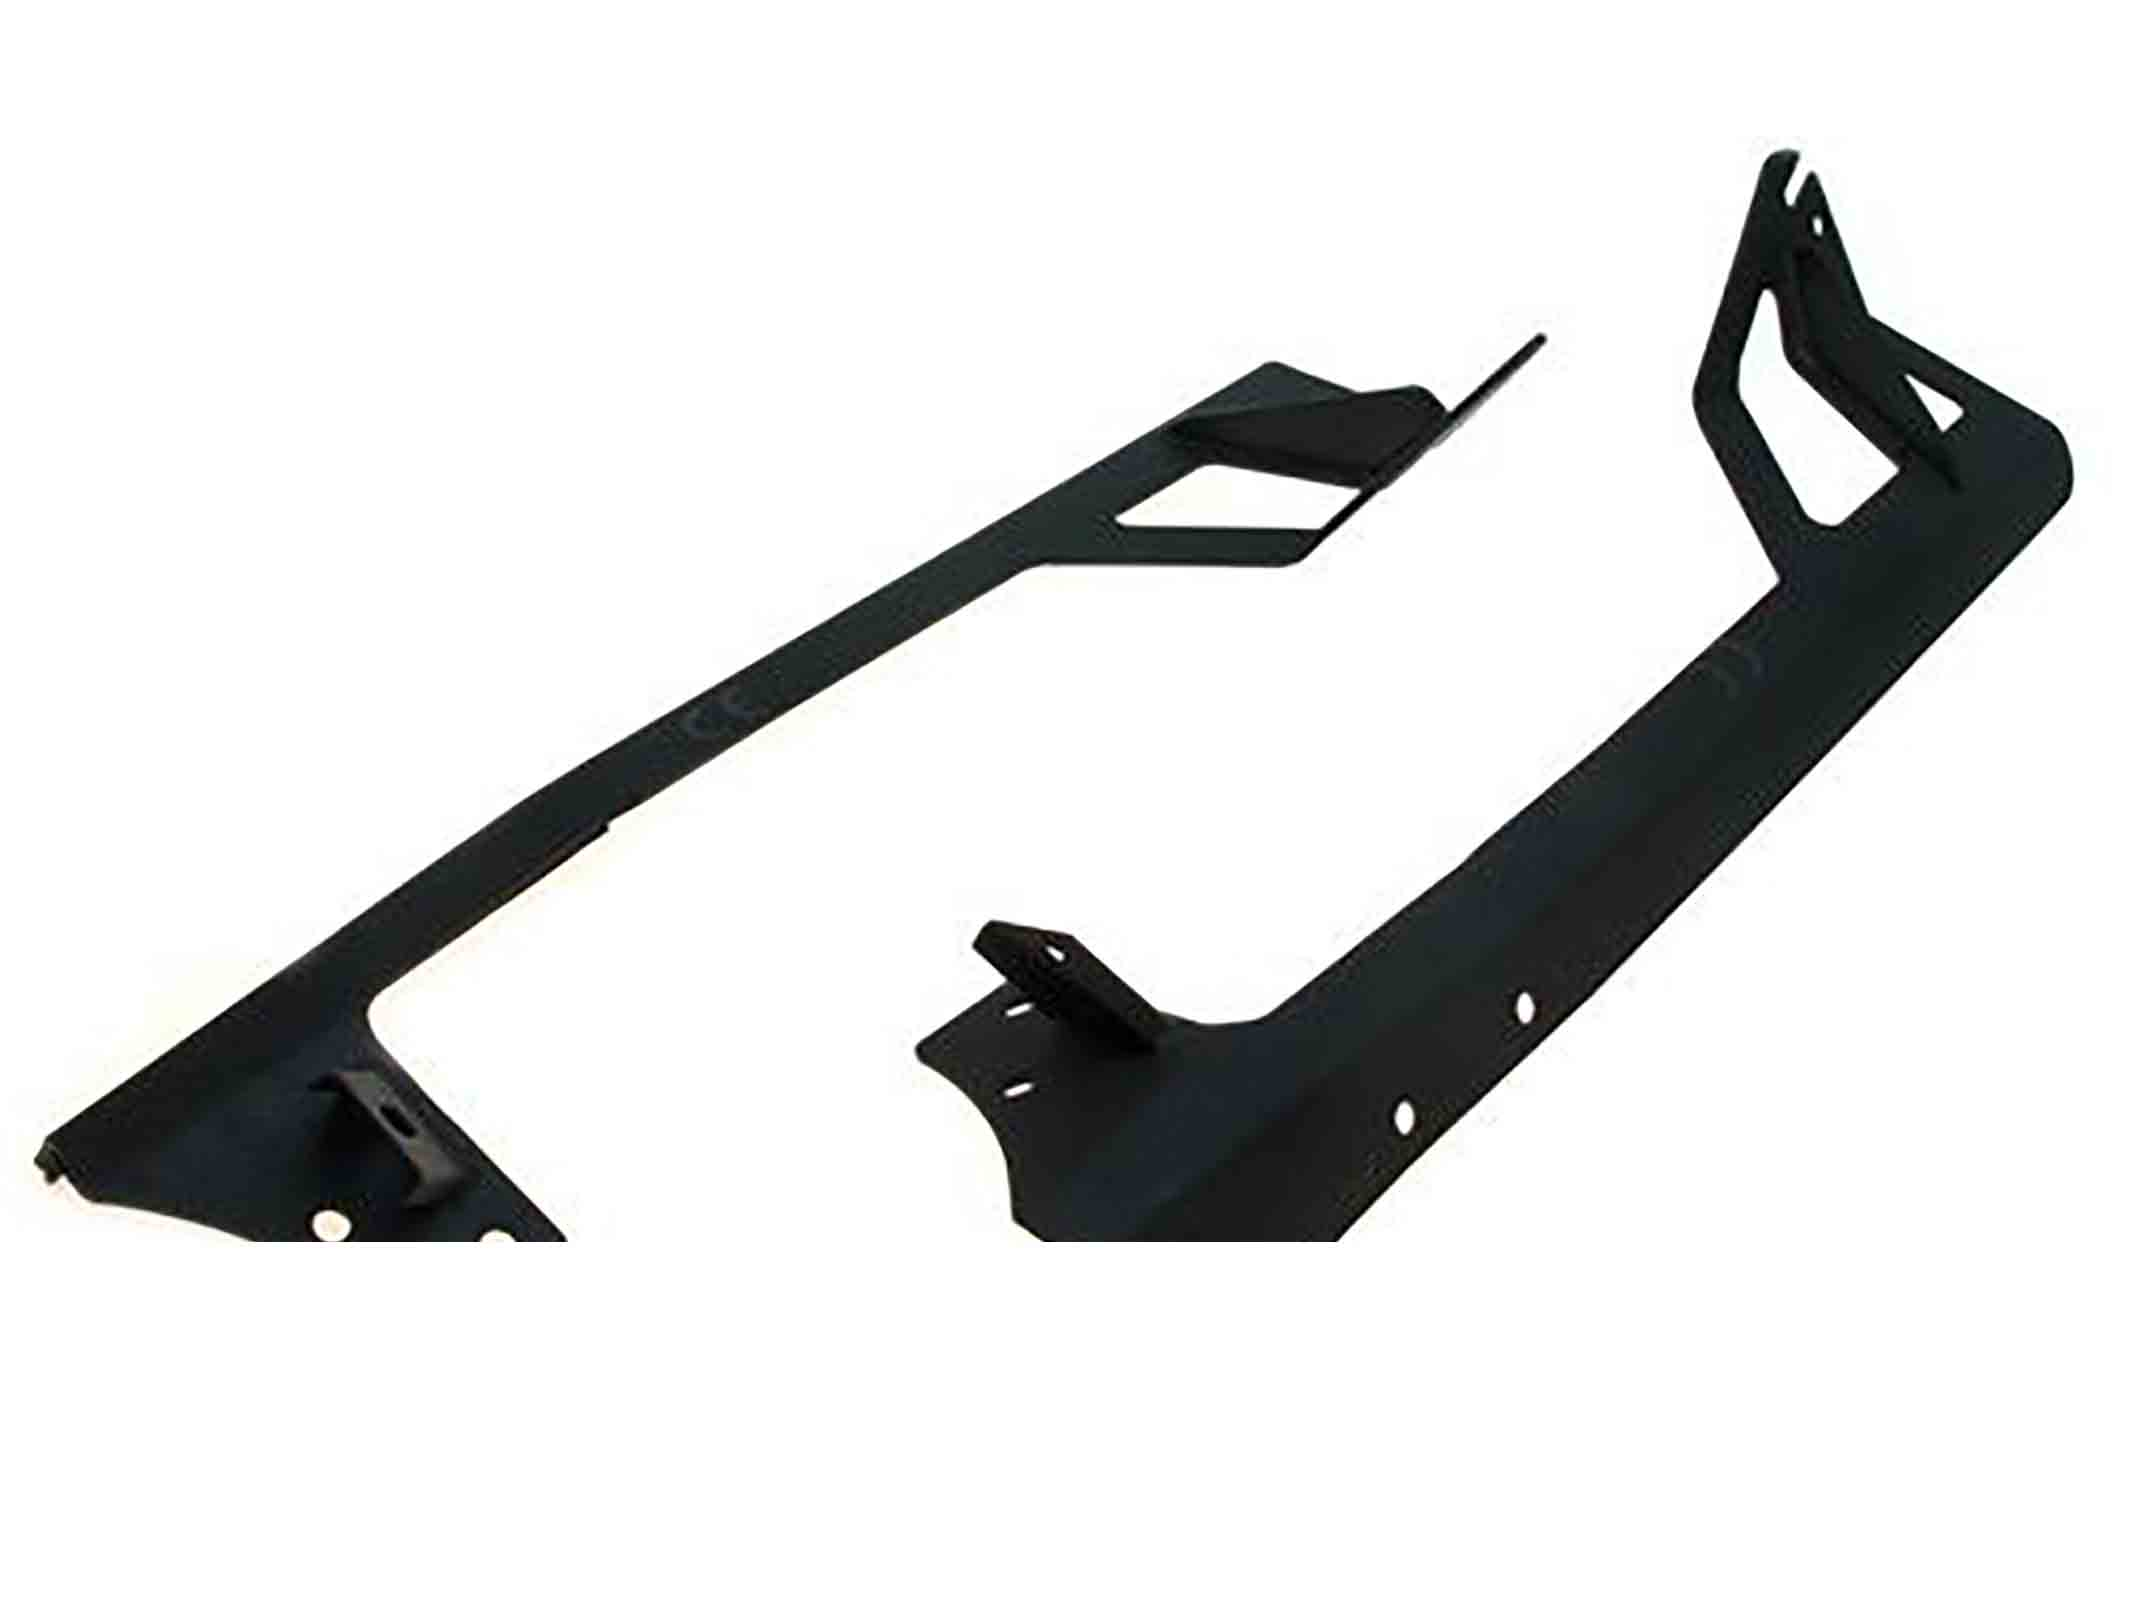 Supporto fari per led bars wrangler jk 07 18 per 1x 50 lightbar + faro supporto ricambi jeep